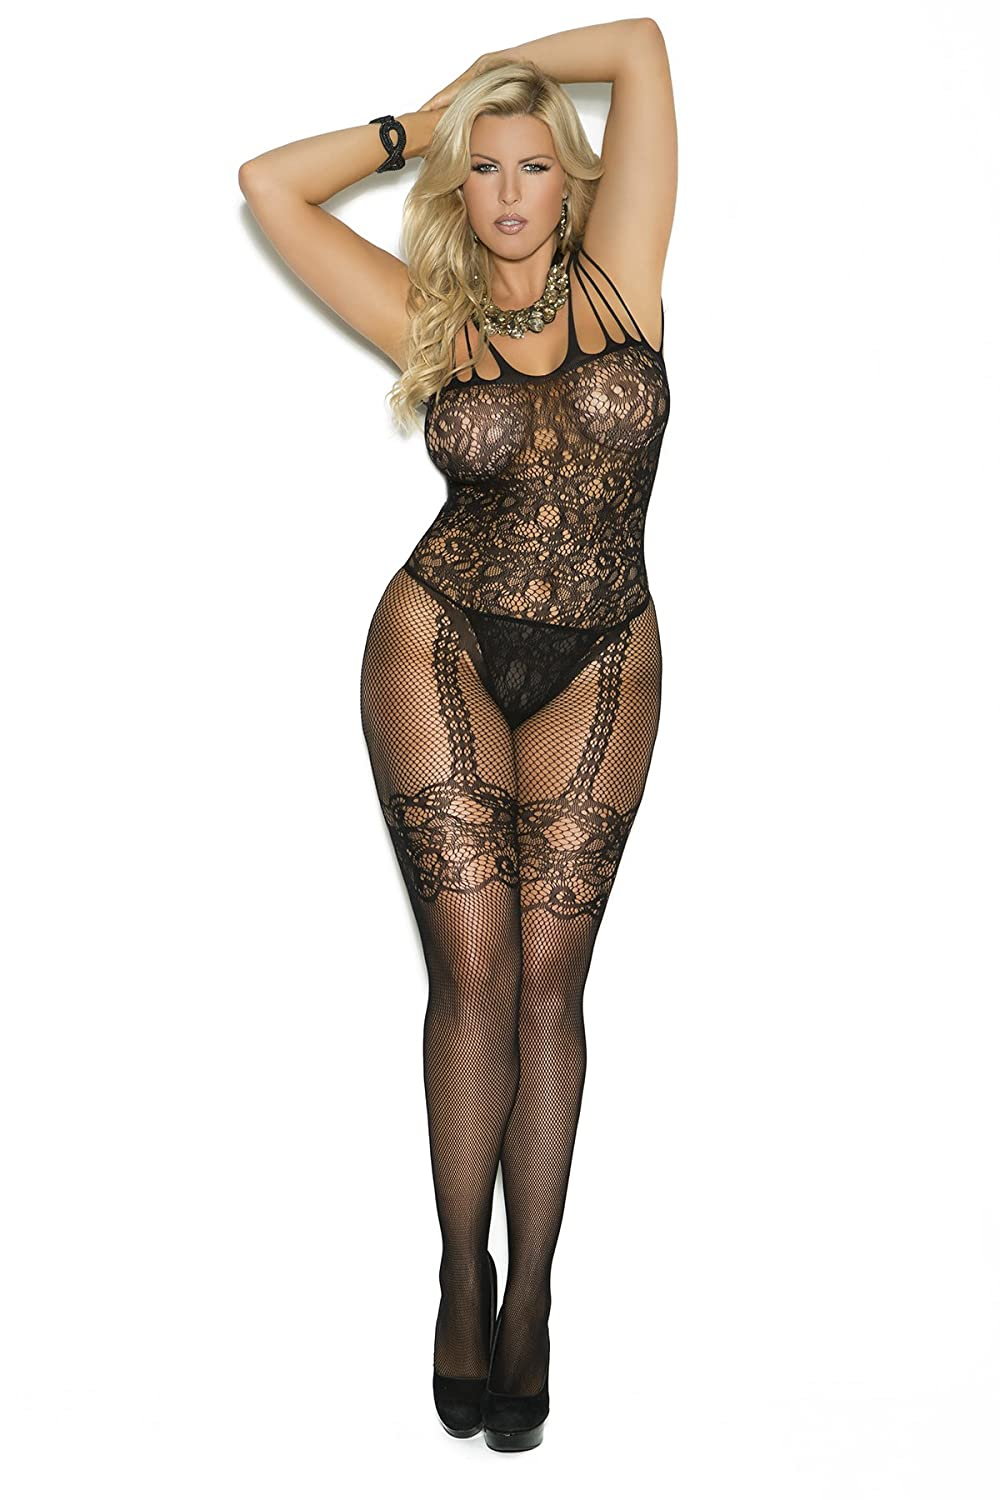 Amazon.com: Sexy Women's Plus Size Lingerie Fishnet And Lace Open ...